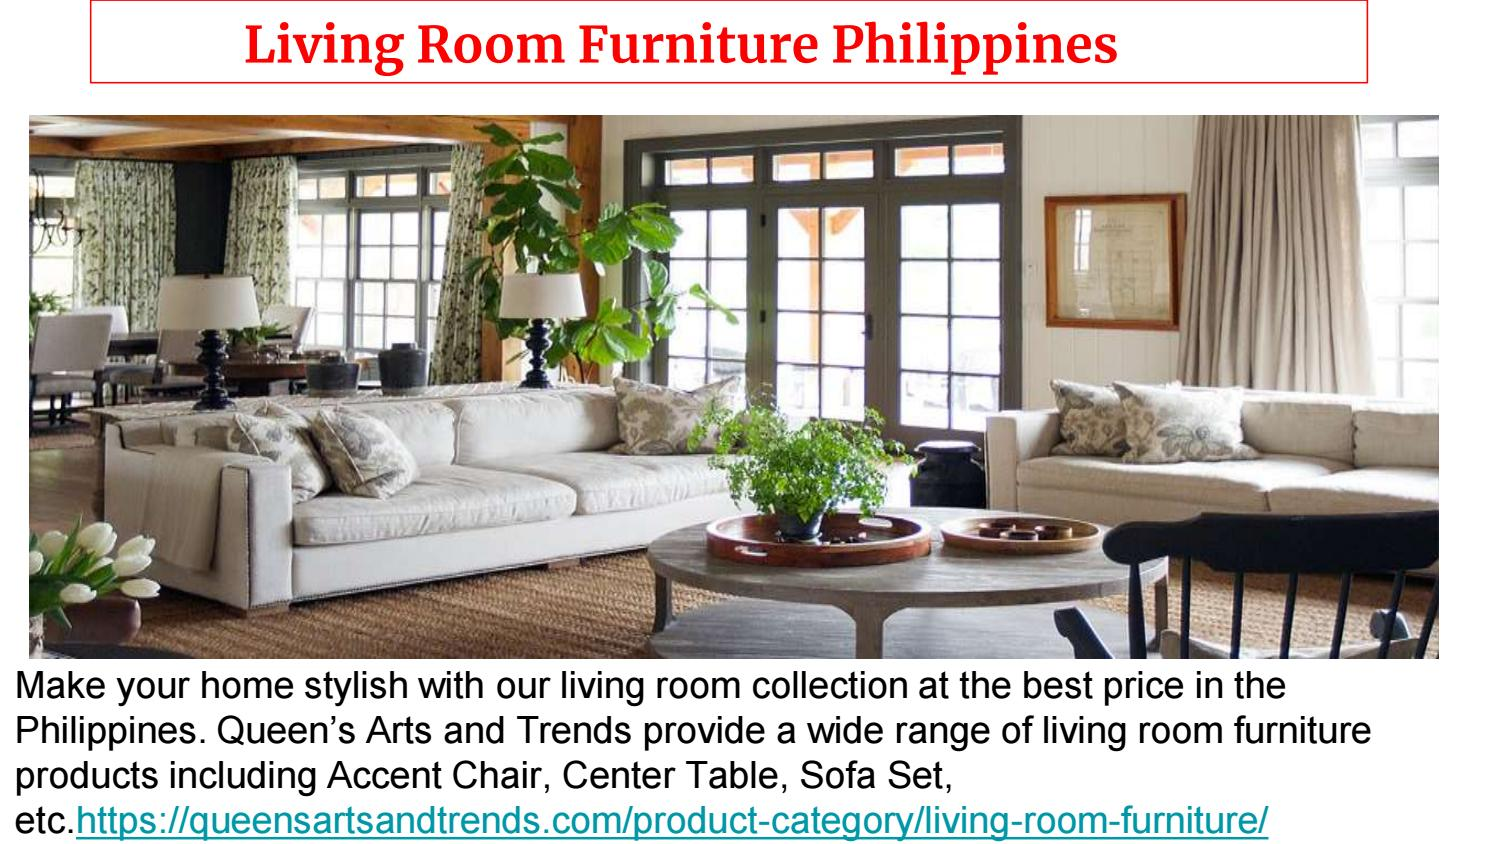 Modern Living Room Furniture Philippines - Queens Arts And Trends By  Queensartsandtrends - Issuu